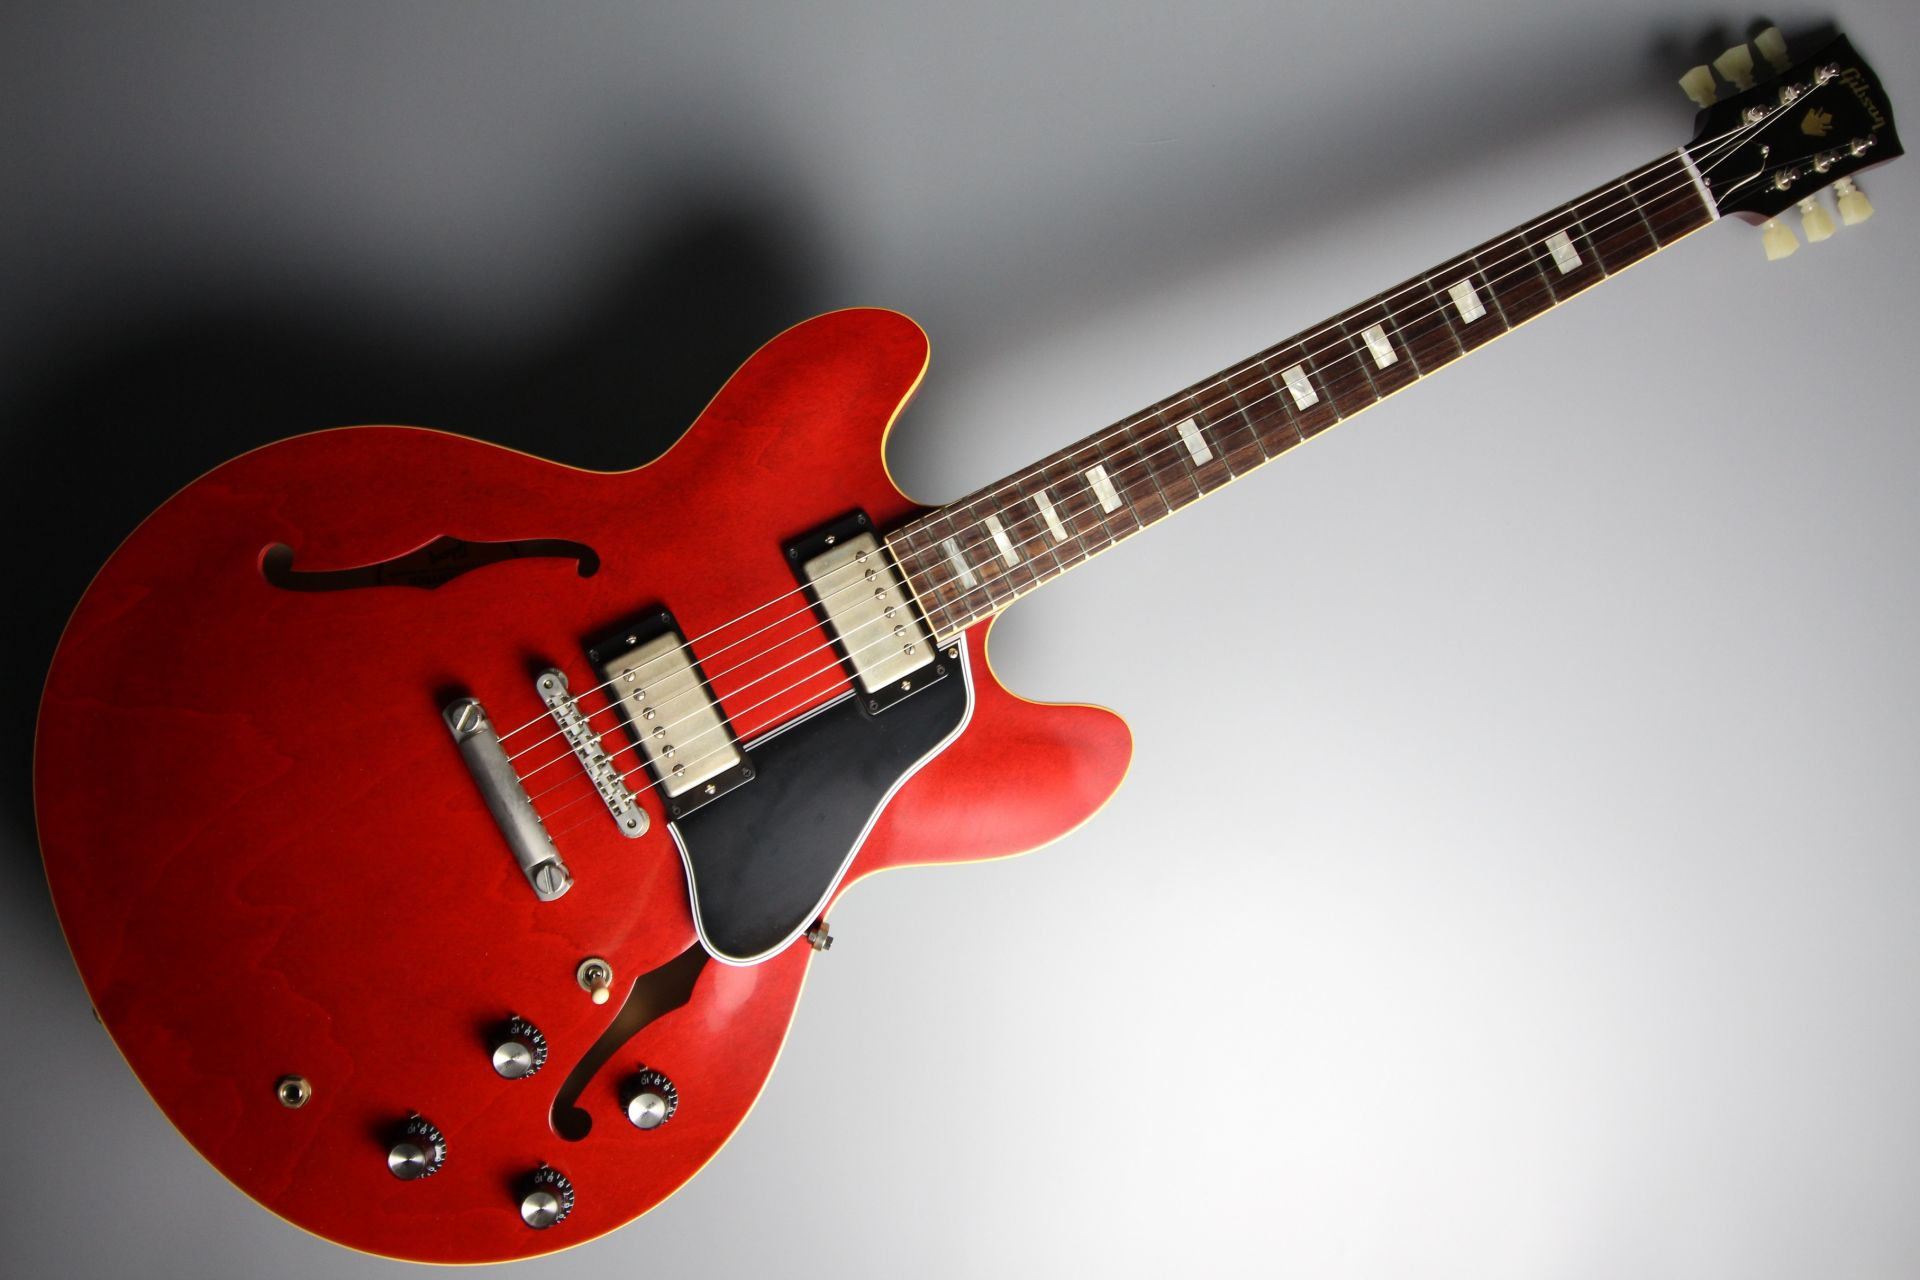 Limited Run 1963 ES-335 TDC VOS Sixties Cherryのボディトップ-アップ画像